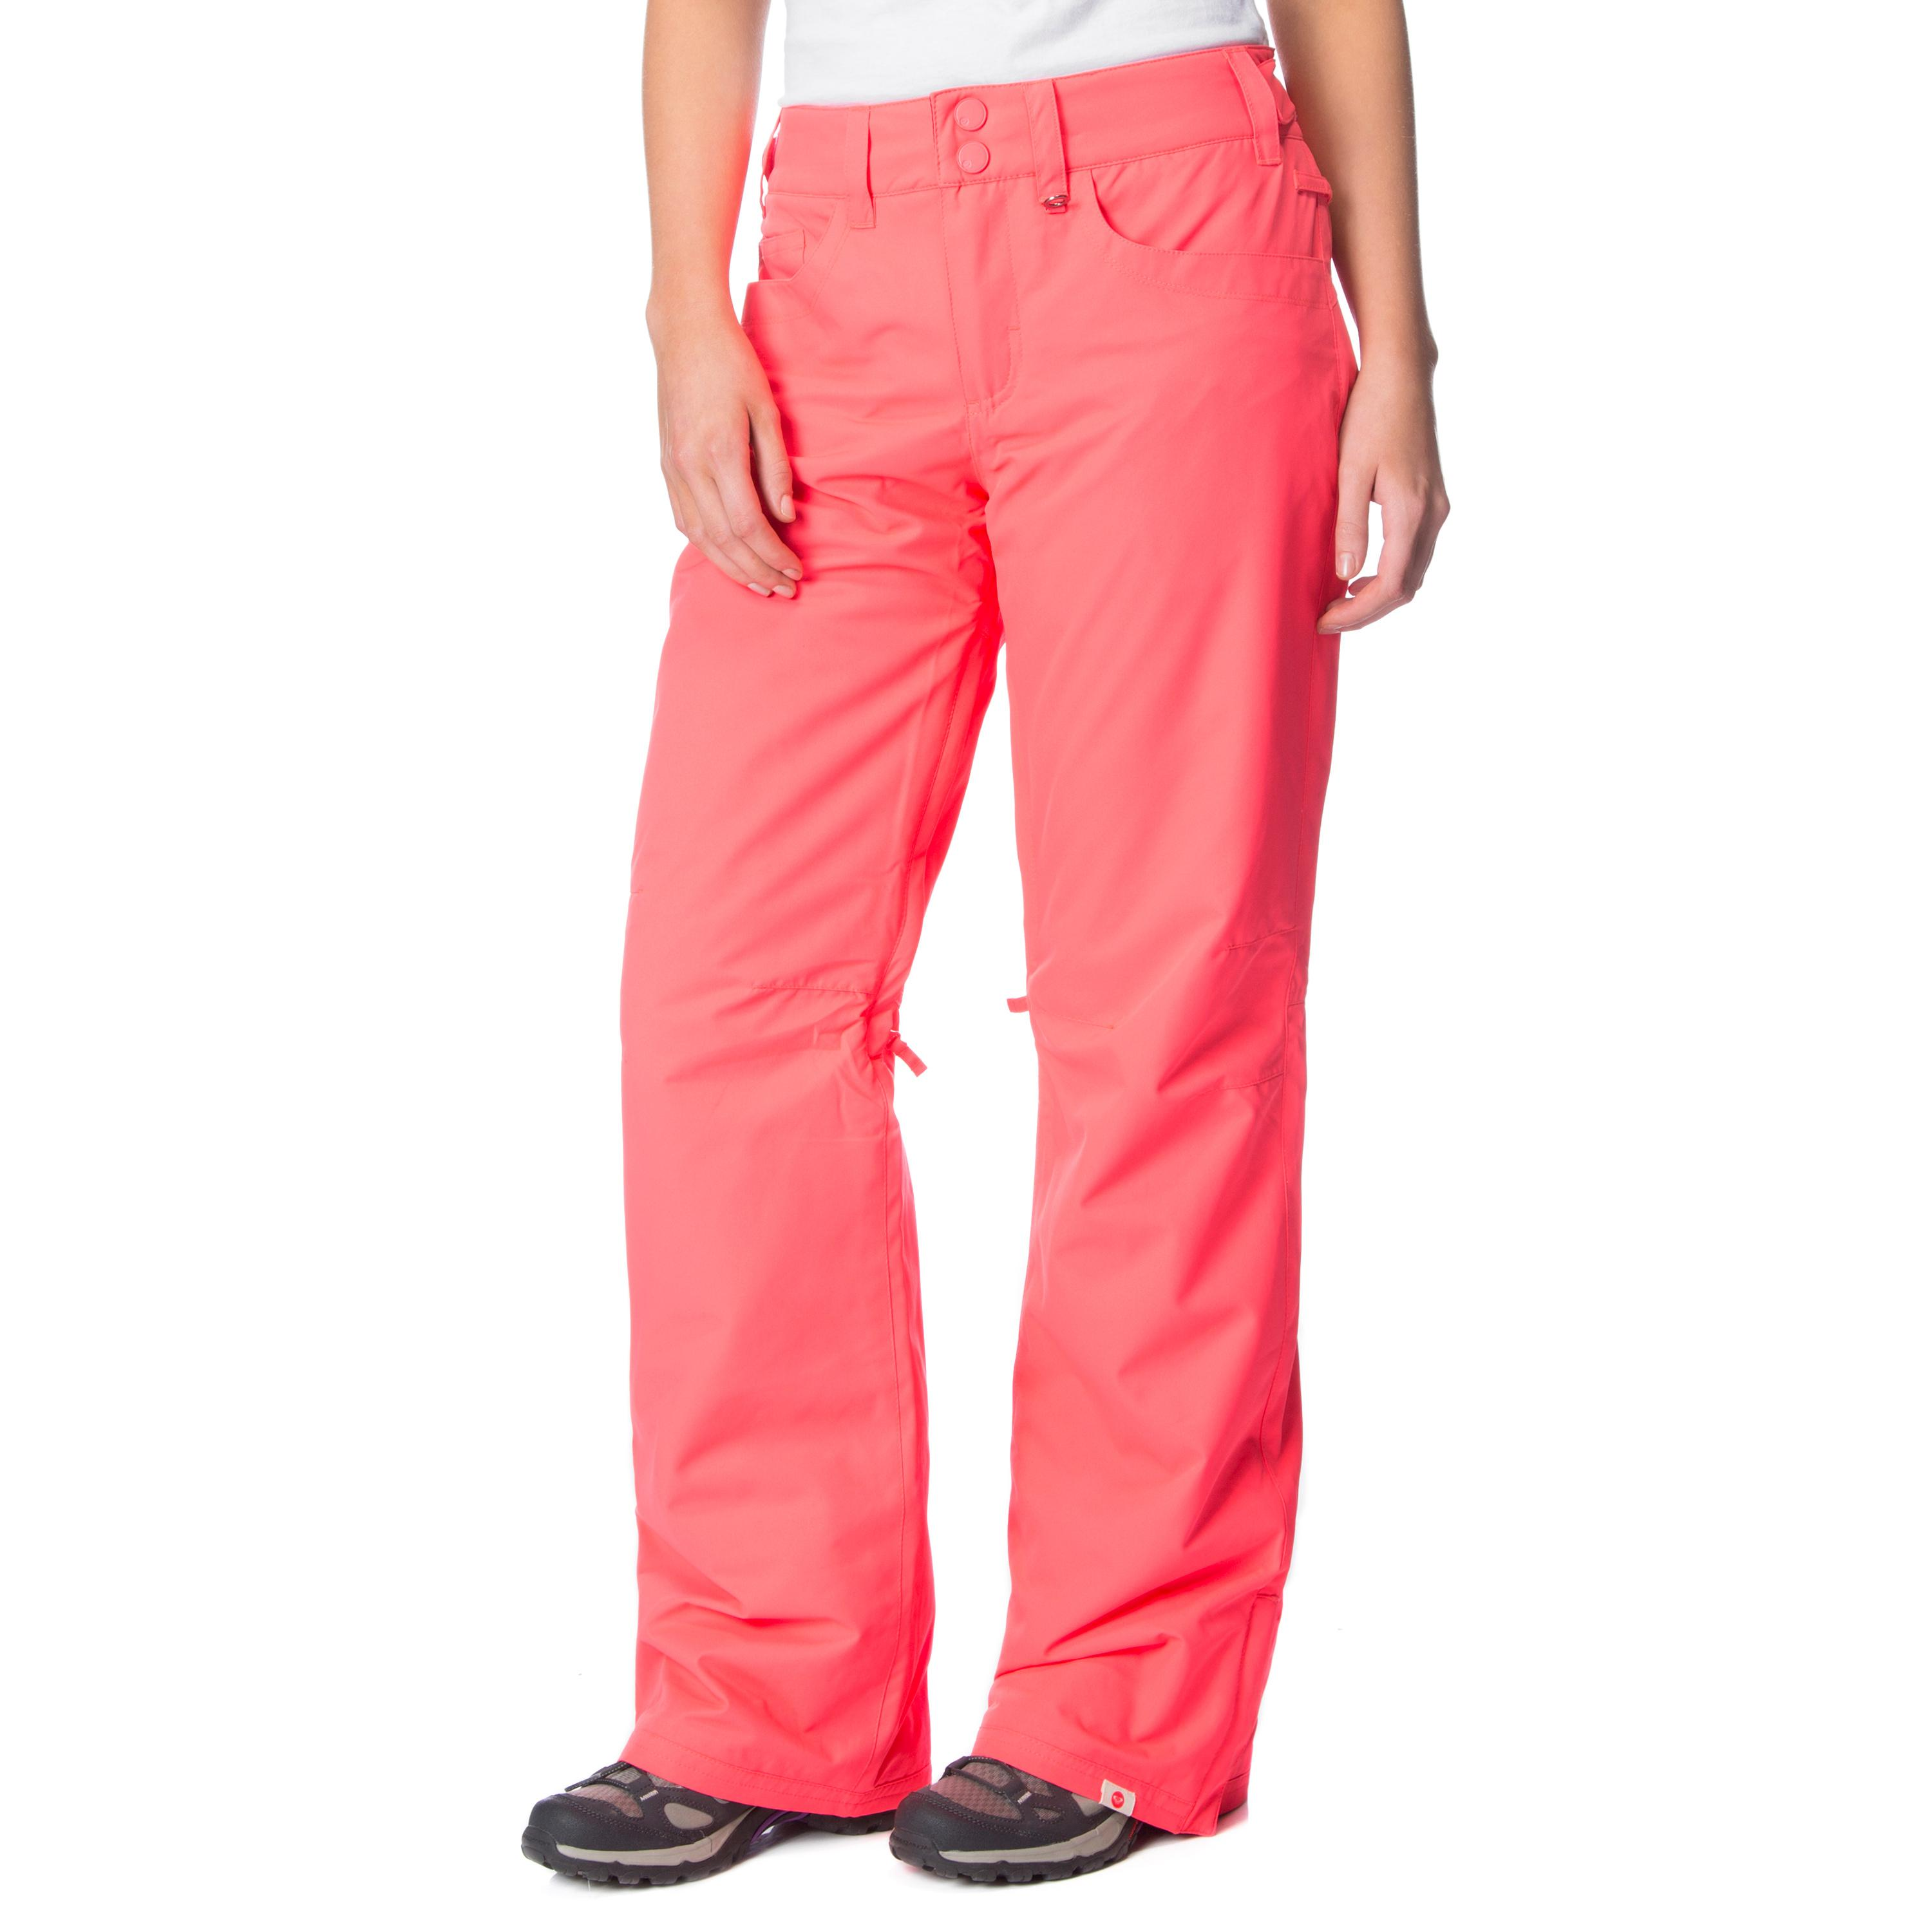 Roxy Women's Byrd Snowboard Pants, Pink